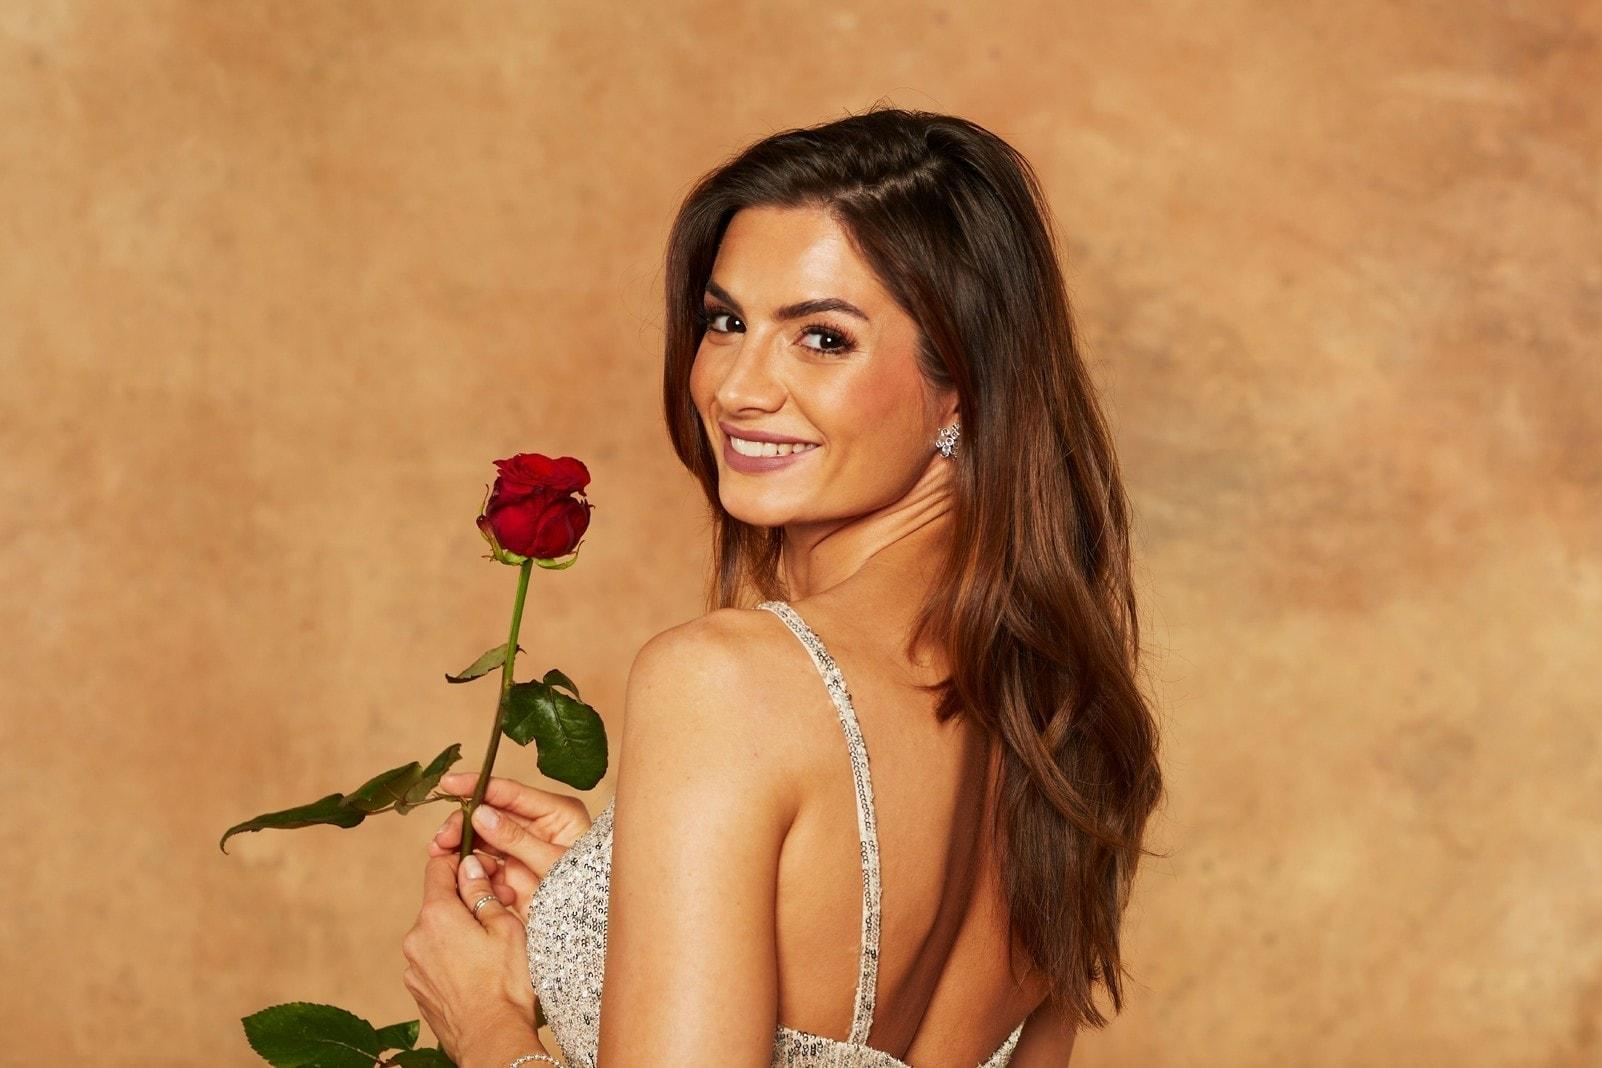 Der Bachelor Michele Rose